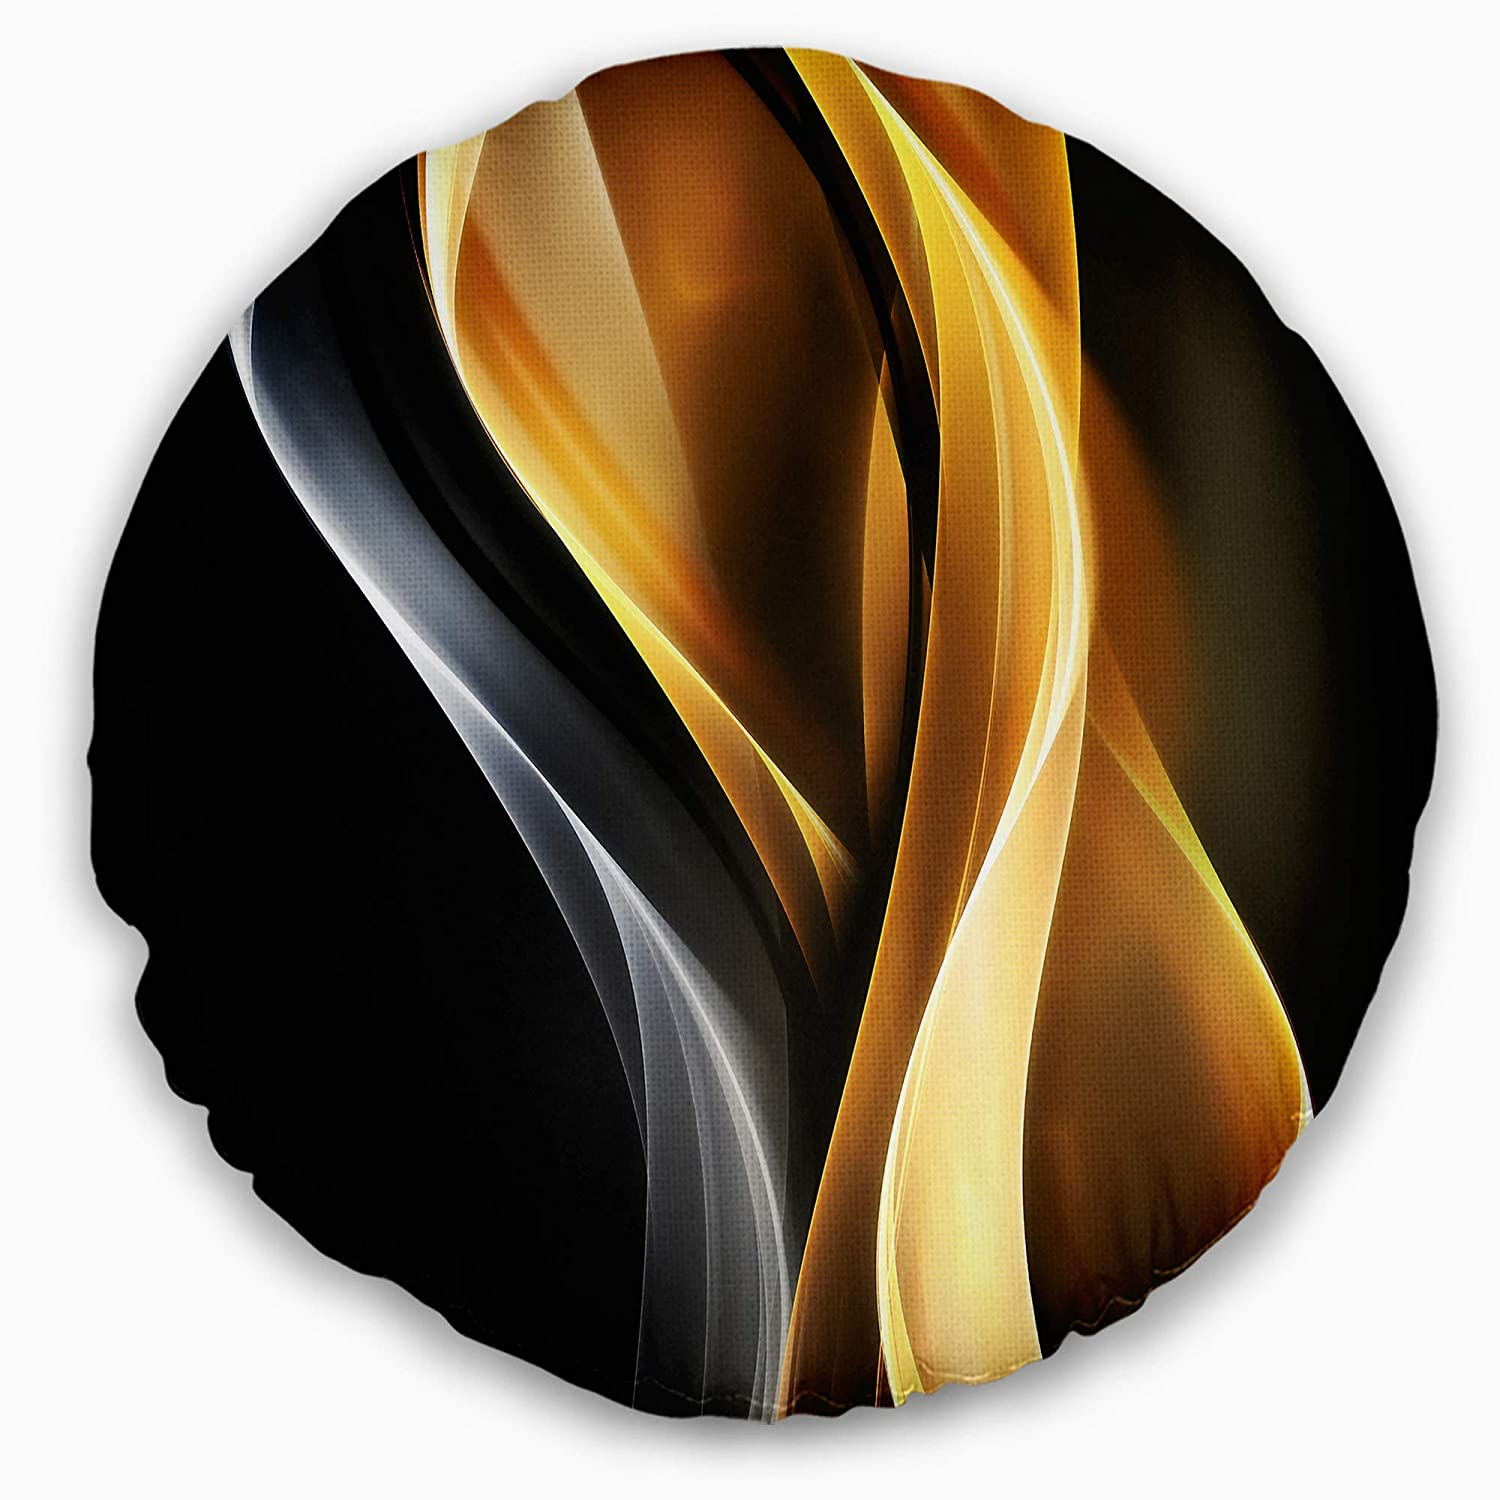 Sofa Throw Pillow 16 Designart CU8847-16-16-C Brown White Light Art Abstract Round Cushion Cover for Living Room Insert Printed On Both Side